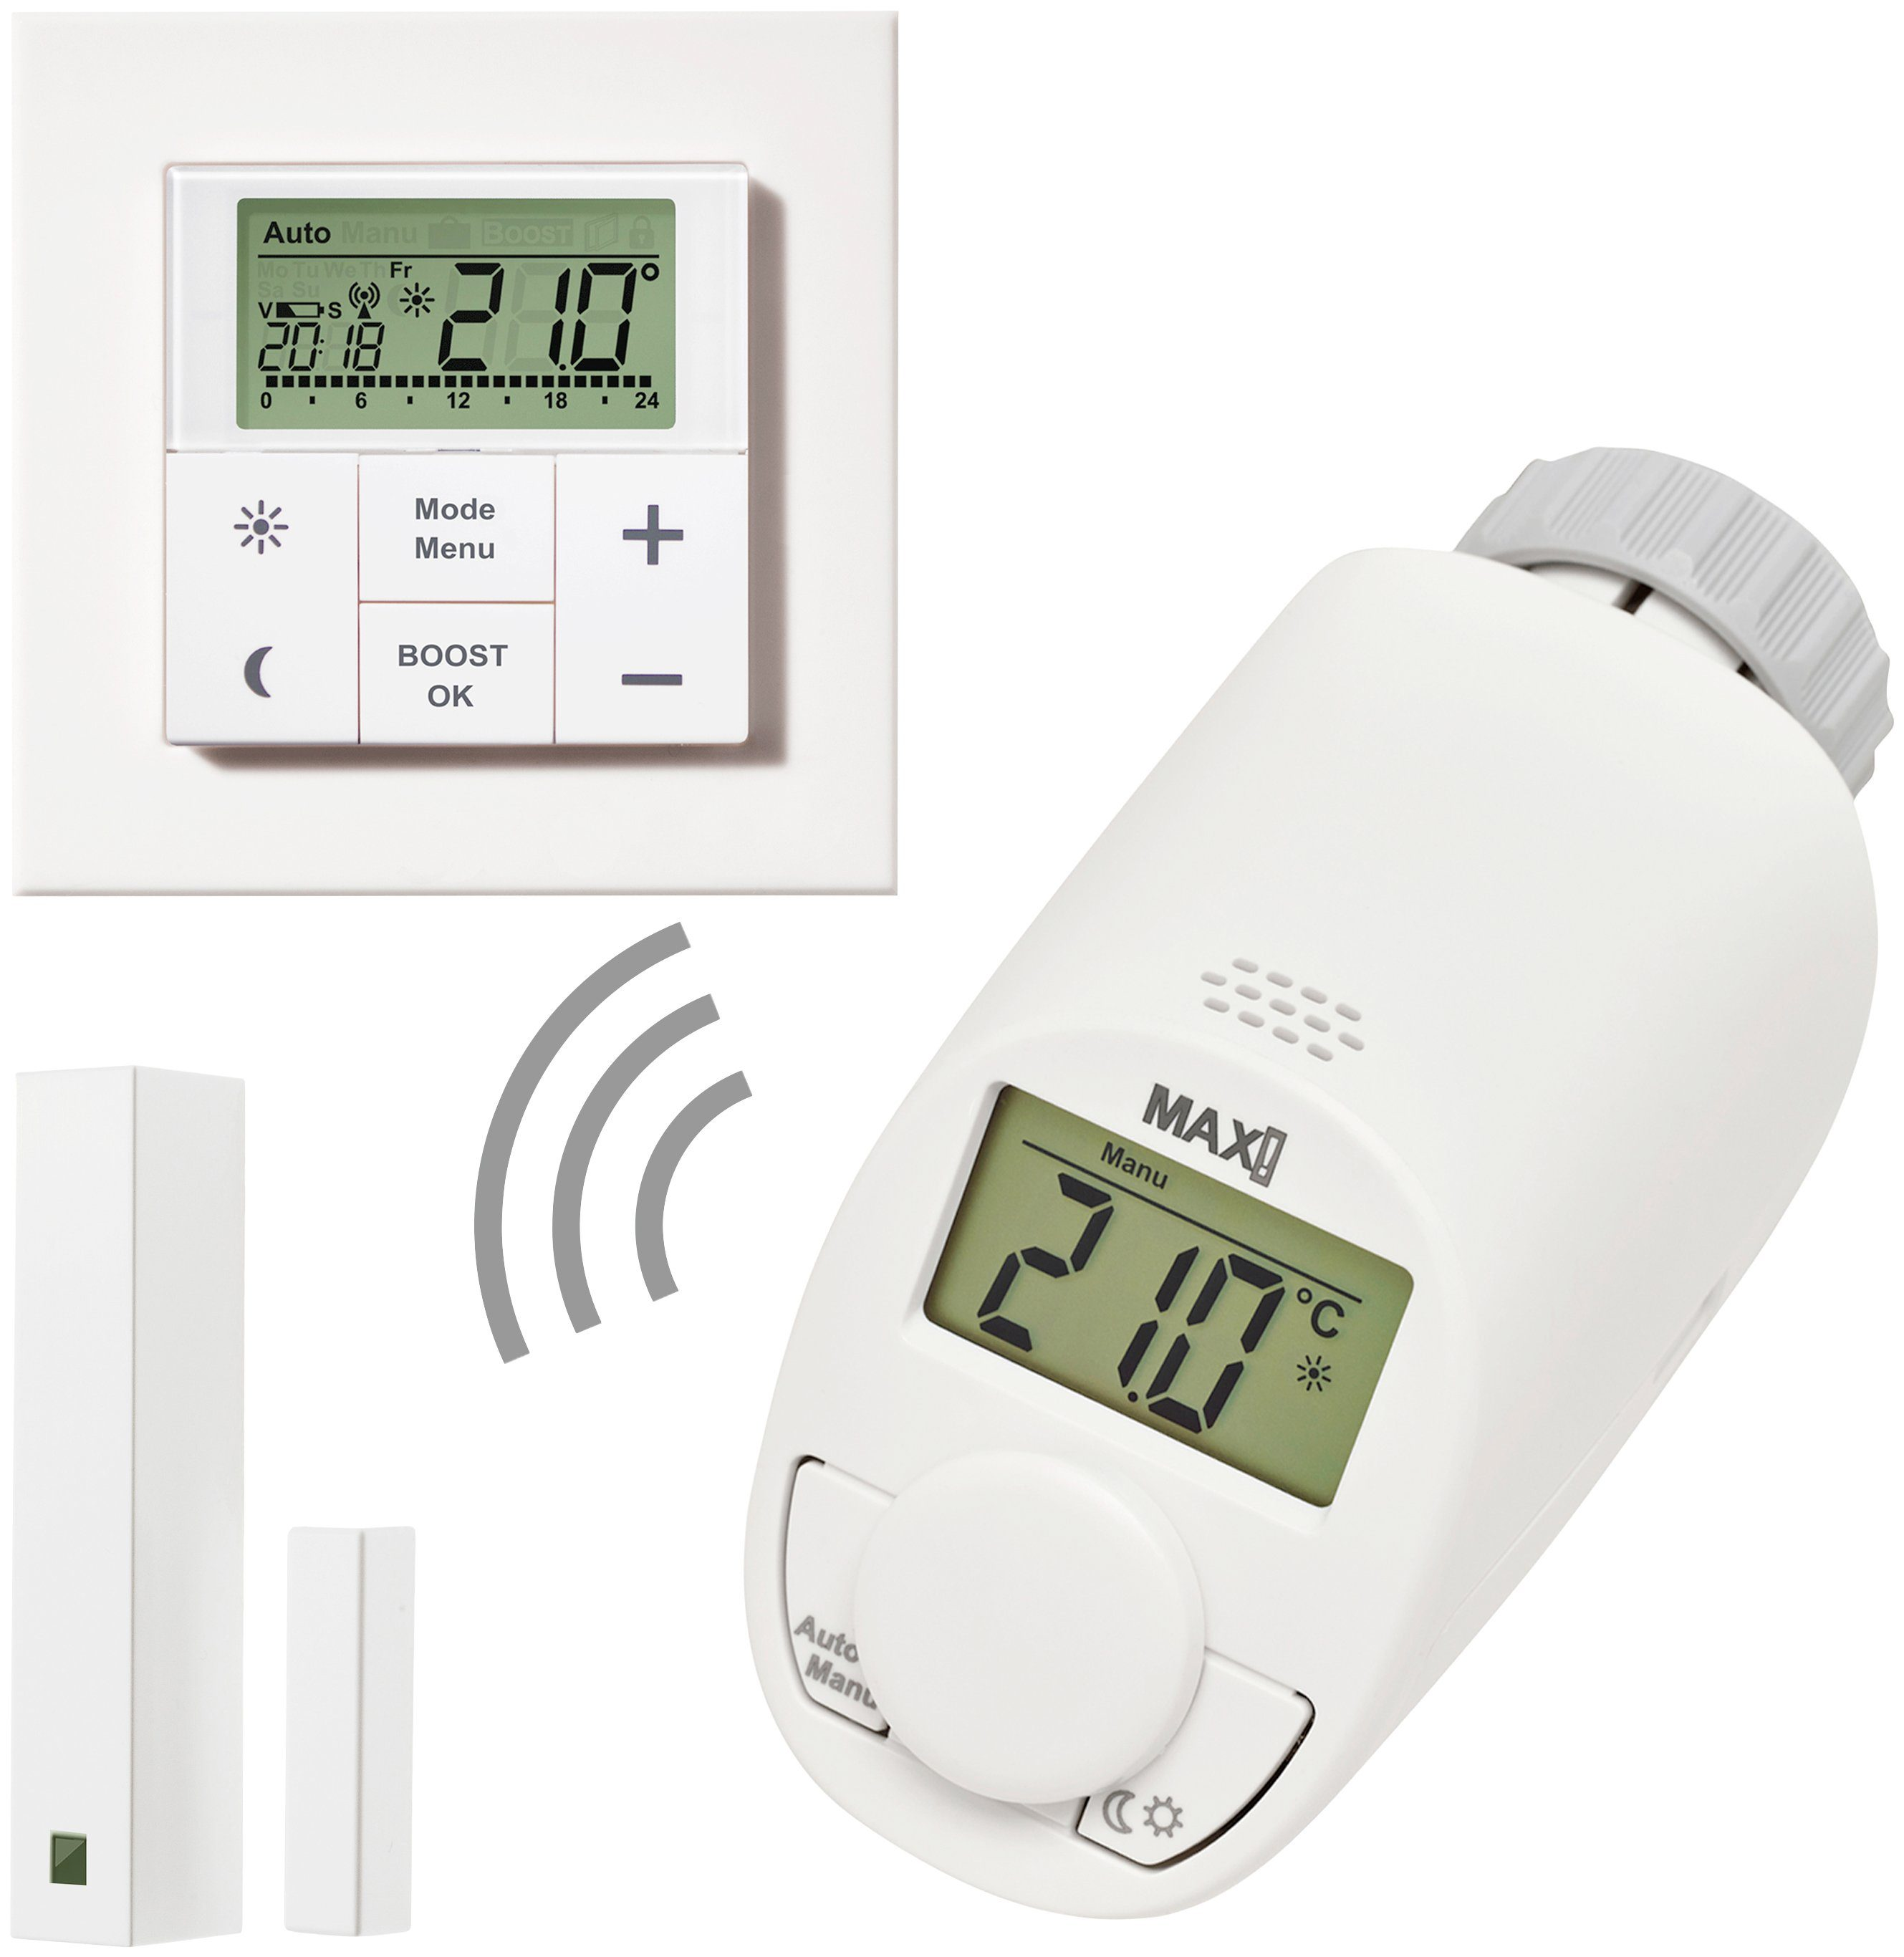 MAX! Smart Home Set »Raumlösung medium«, 3-tlg. Heizkörperthermostat / Wandthermostat /Fensterkontakt